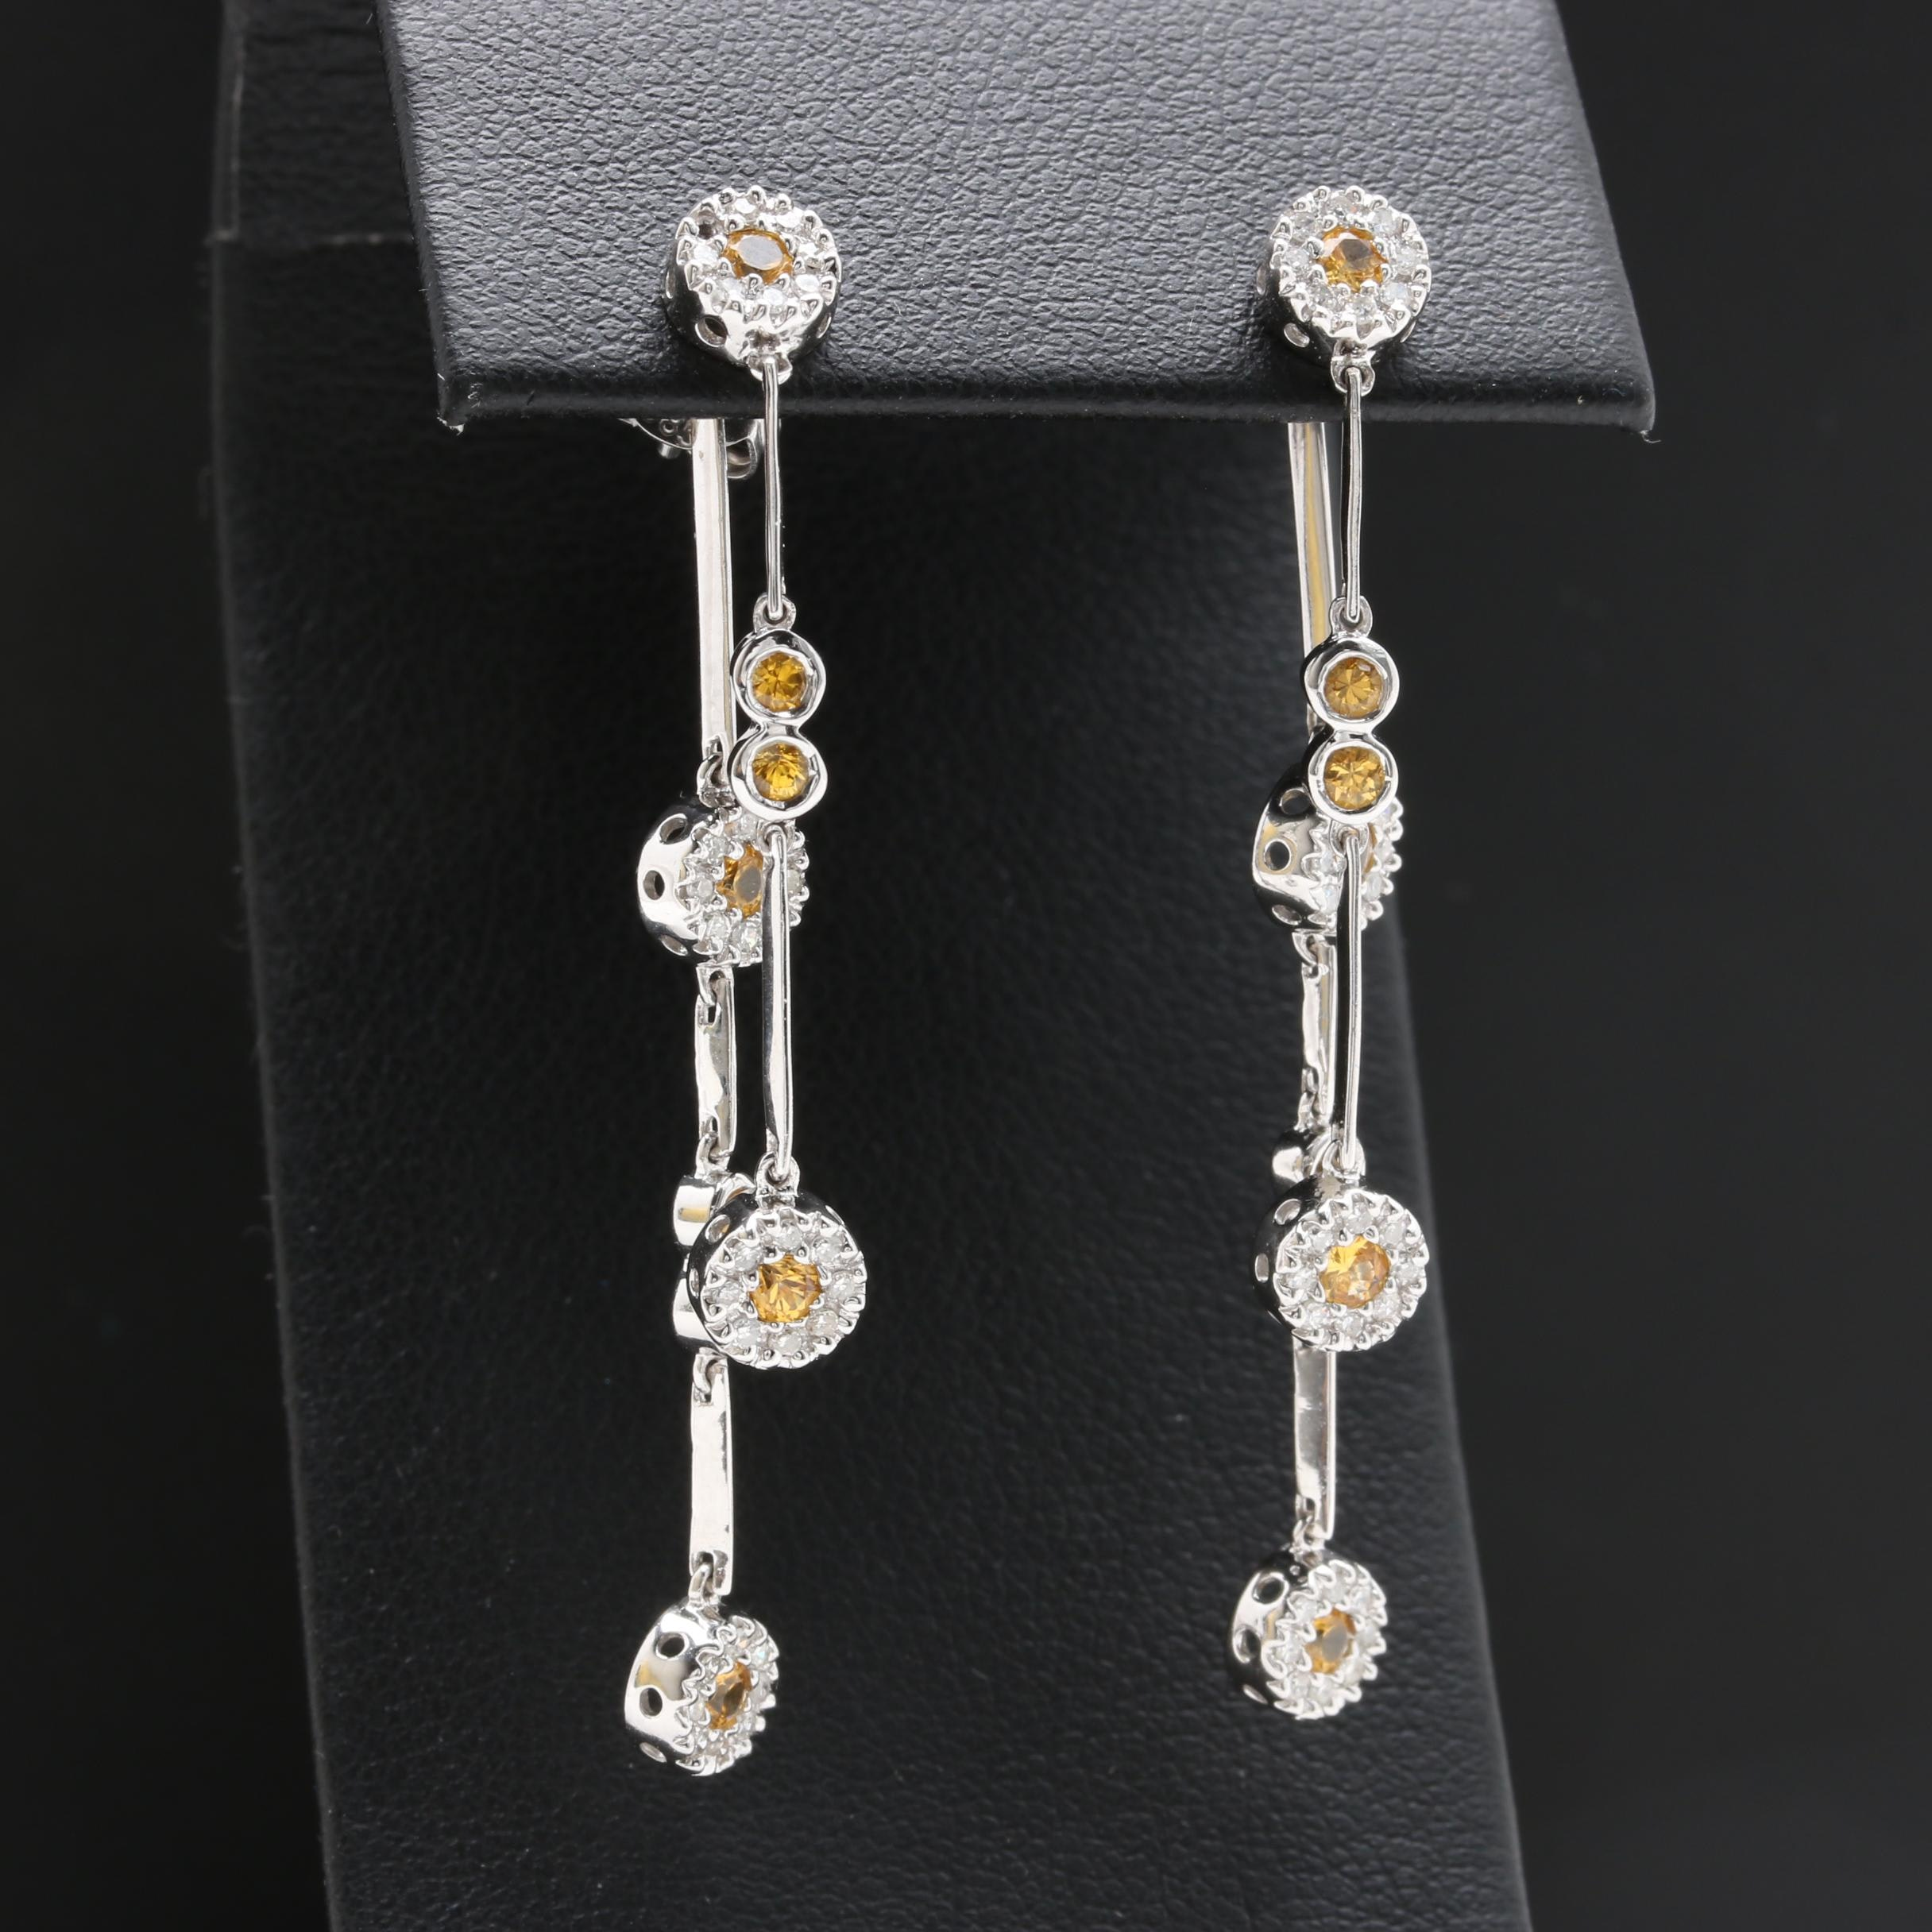 14K White Gold Yellow Sapphire and Diamond Dangle Earrings with Enhancers